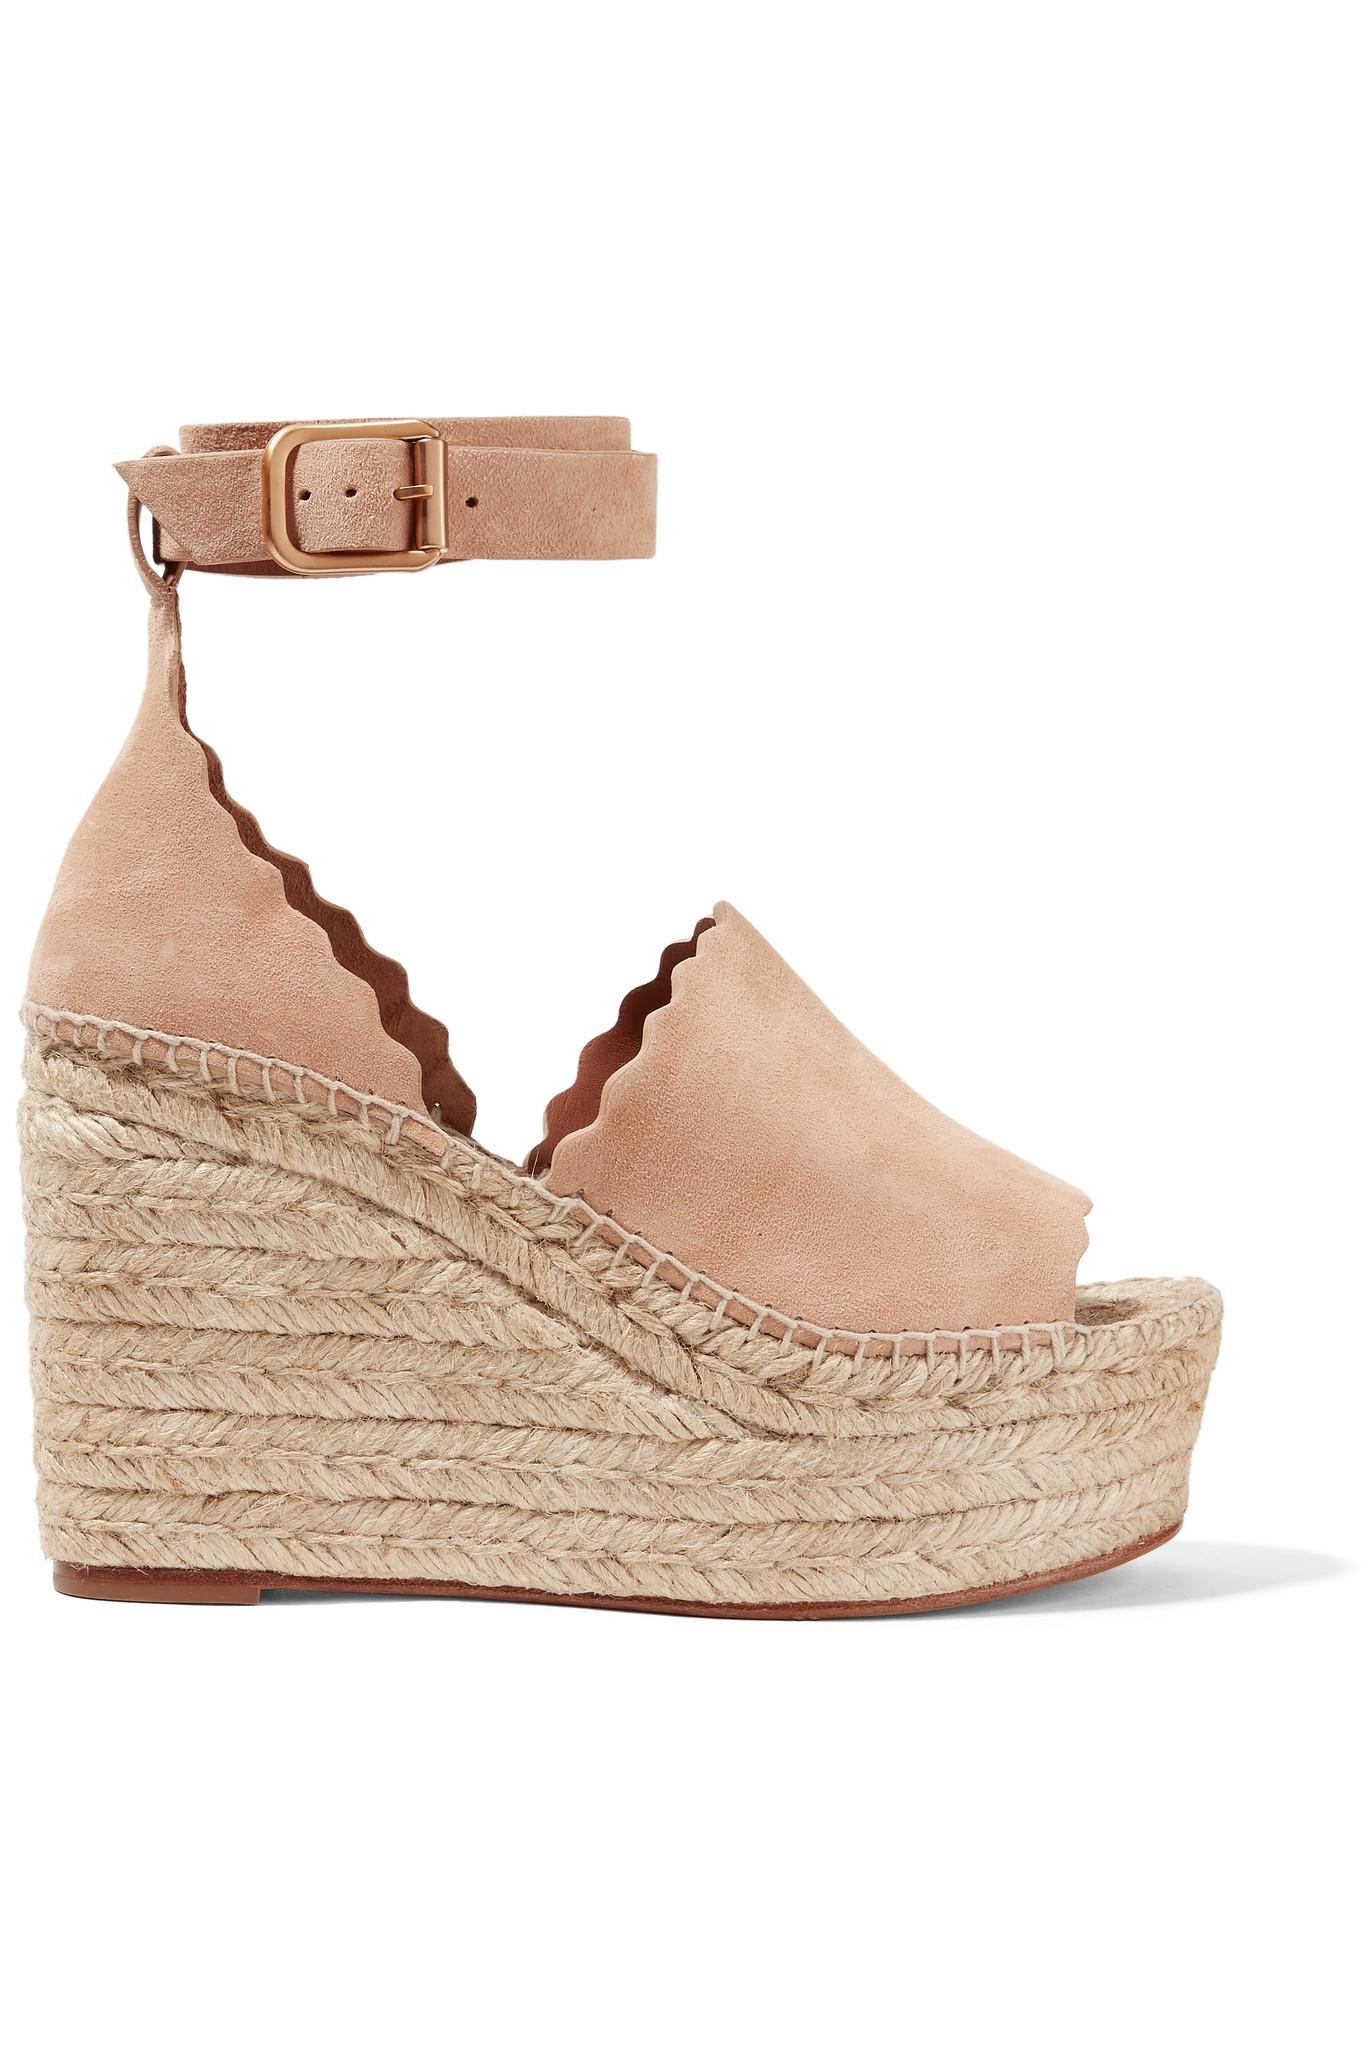 fe6b5398593 Lyst - Chloé Scalloped Suede Espadrille Wedge Sandals in Natural